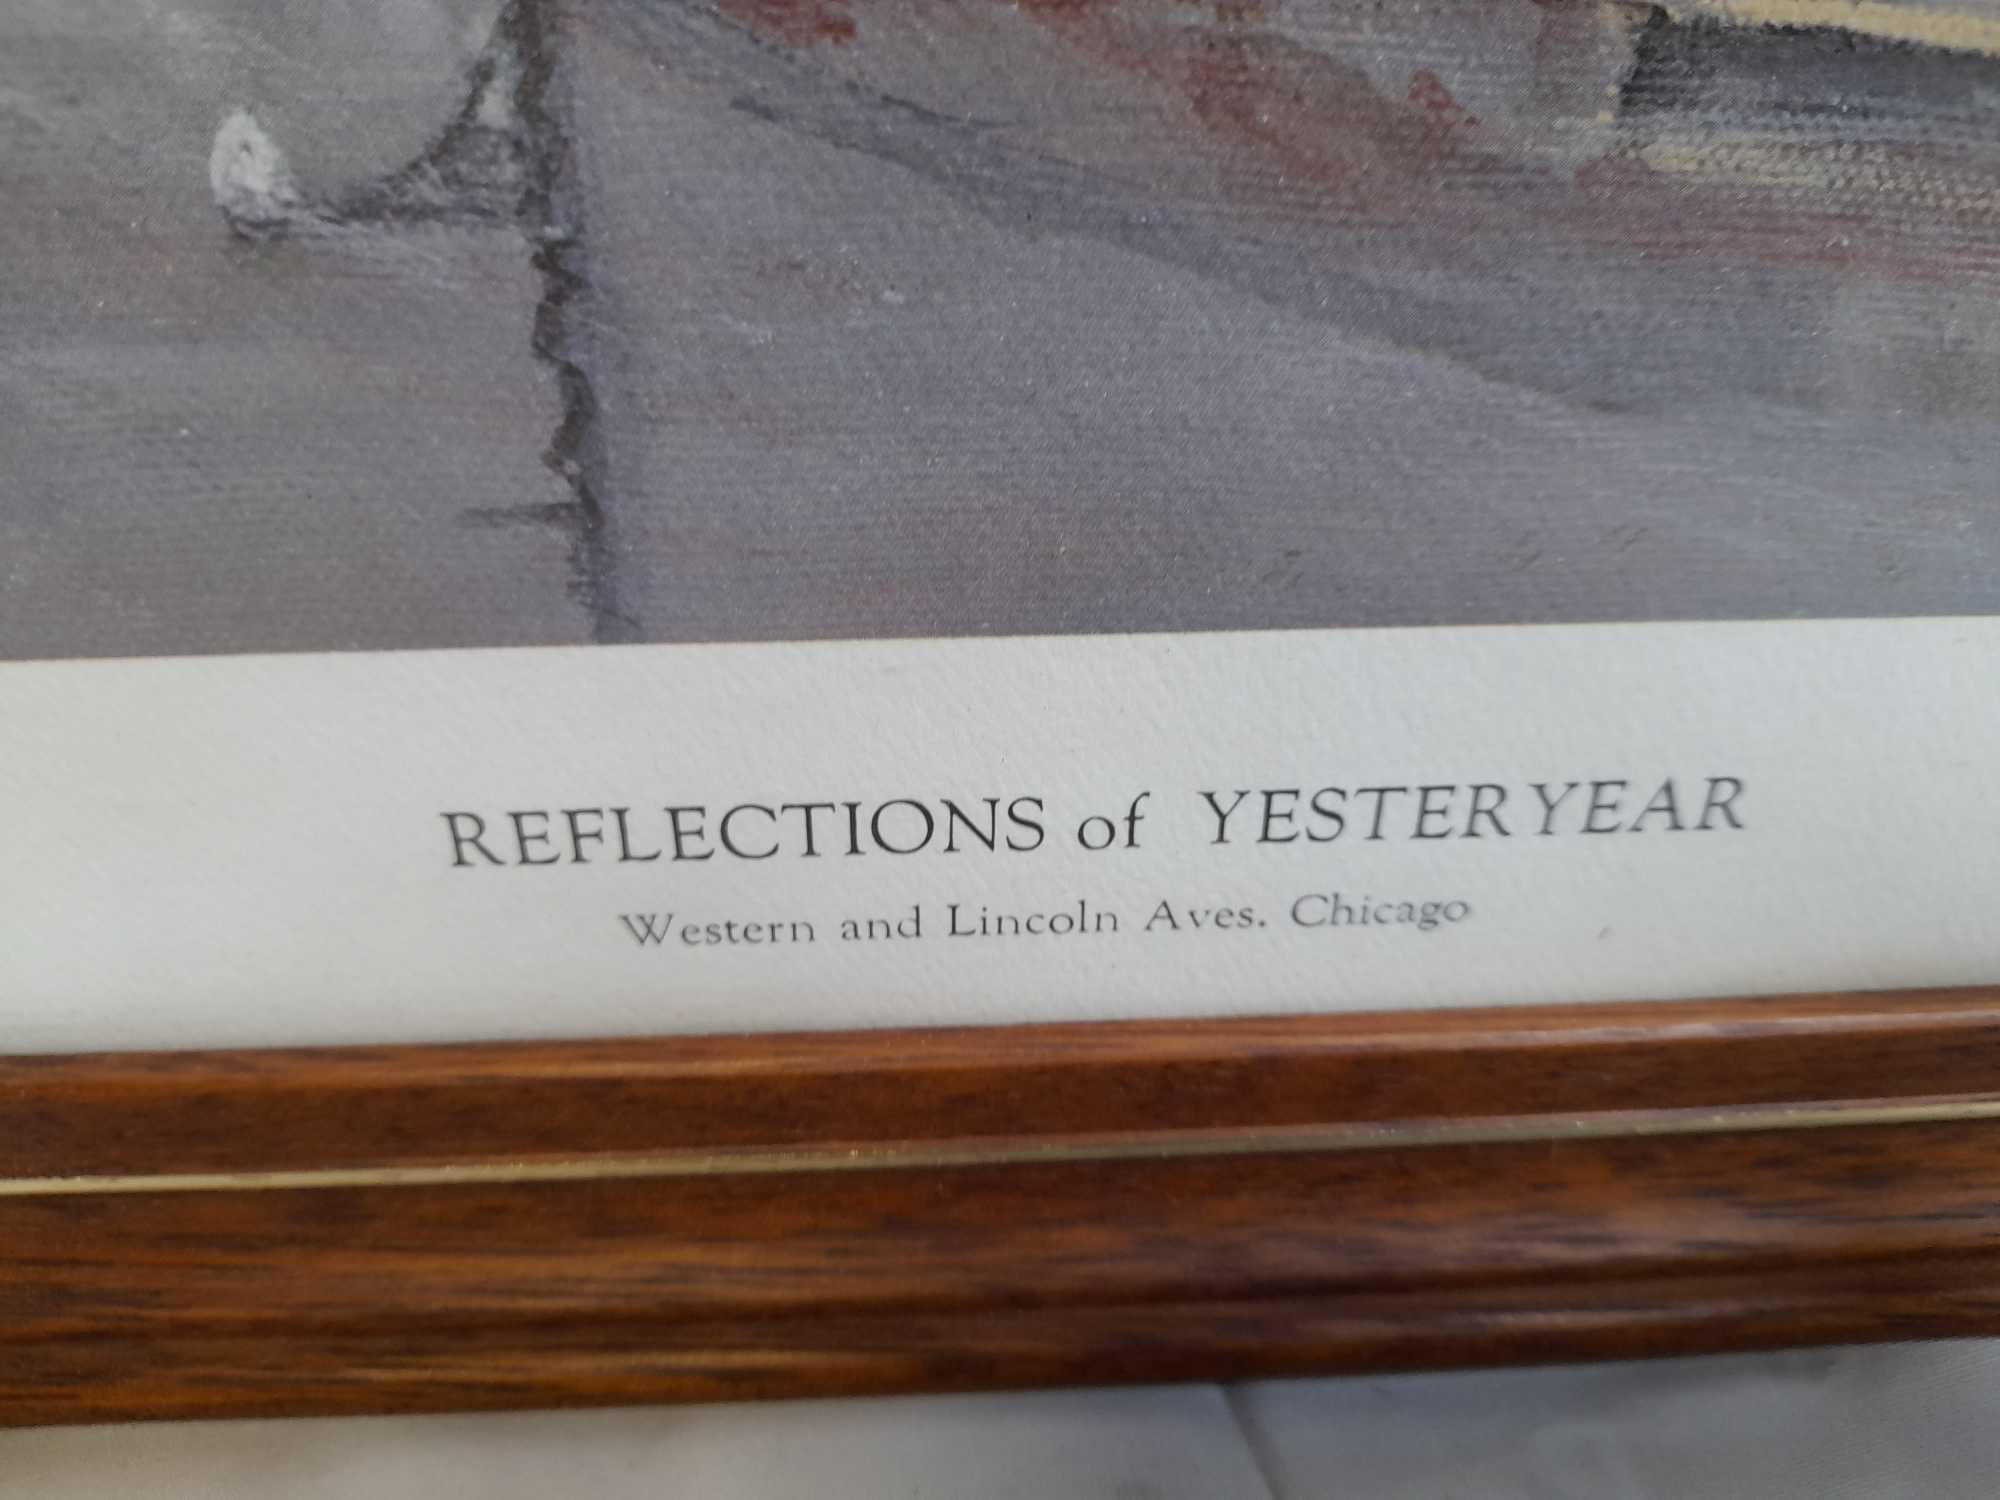 PRINT-REFLECTIONS OF YESTERYEAR CHICAGO - Image 5 of 5